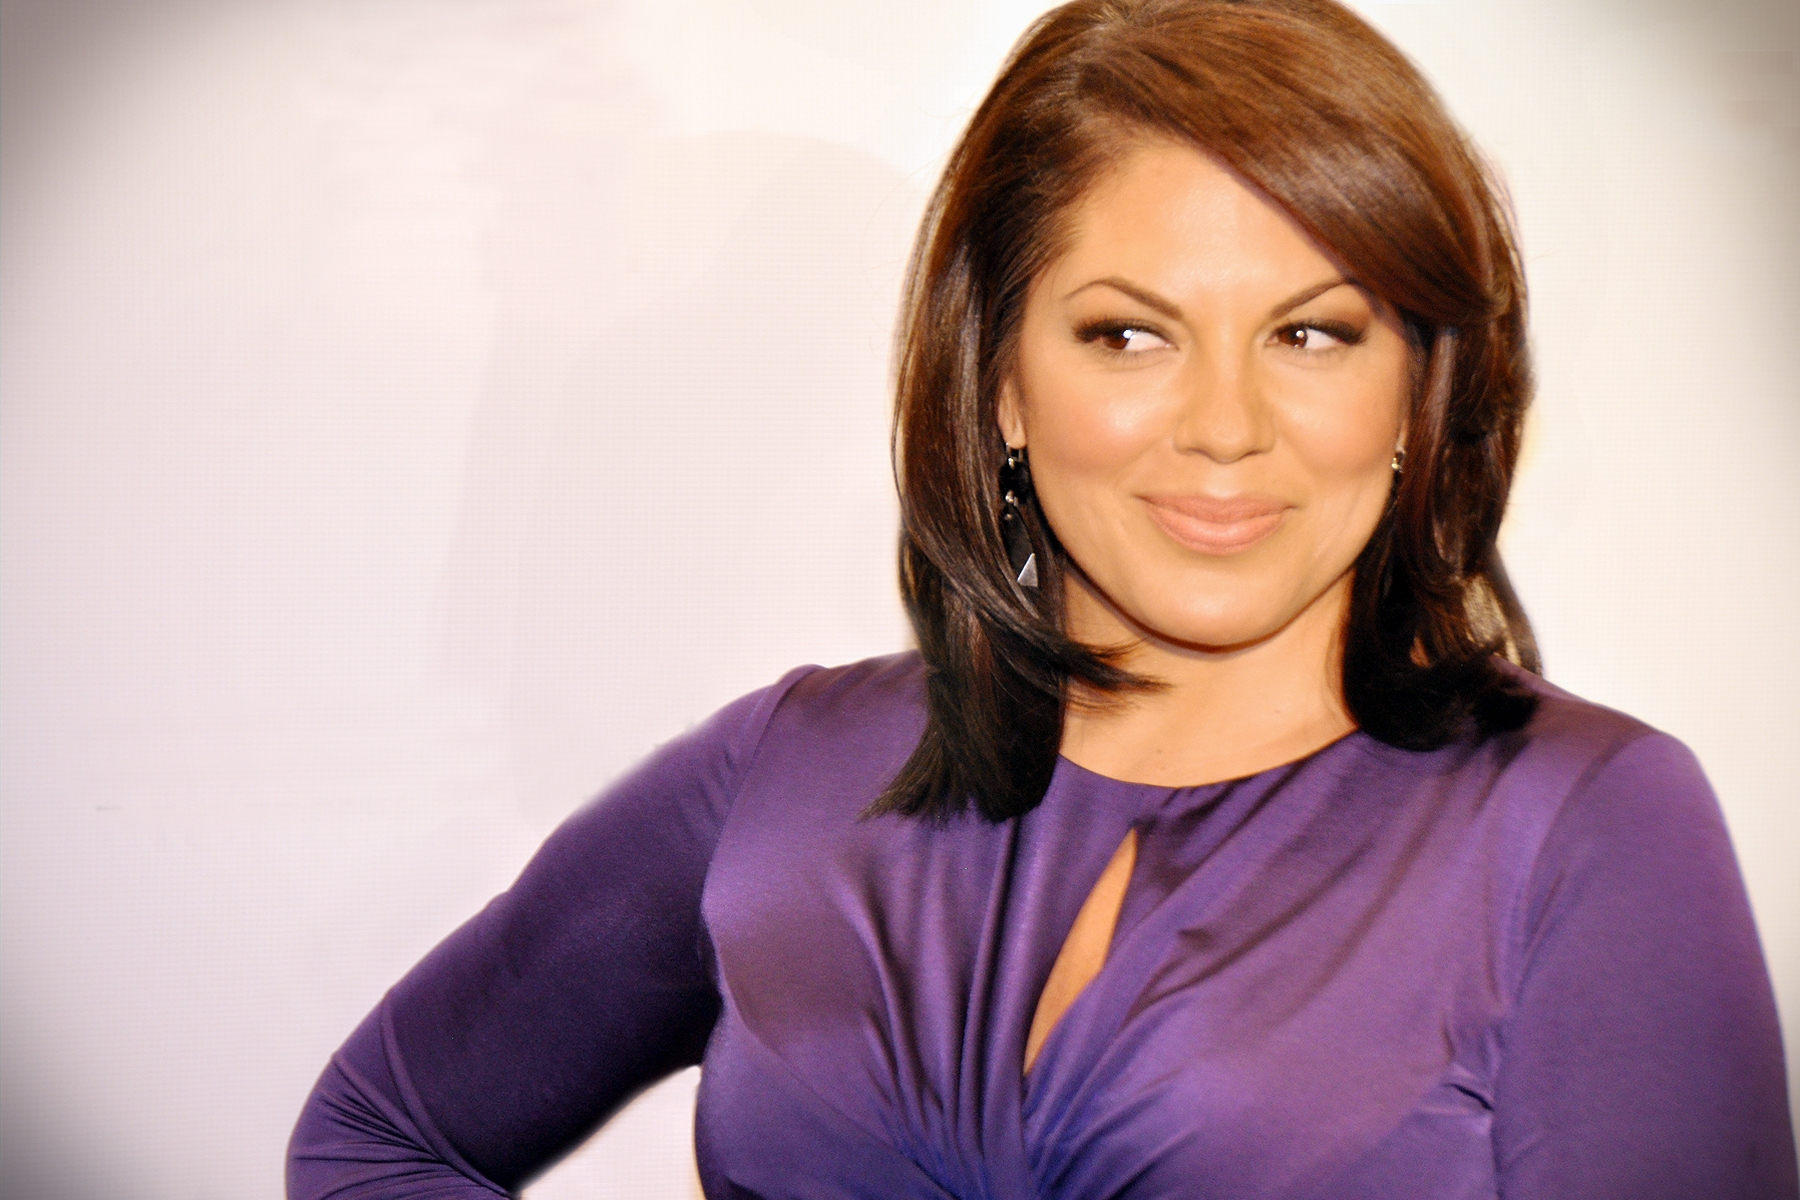 Sara Ramirez Family Celebrity Wallpaper HD Wallpaper